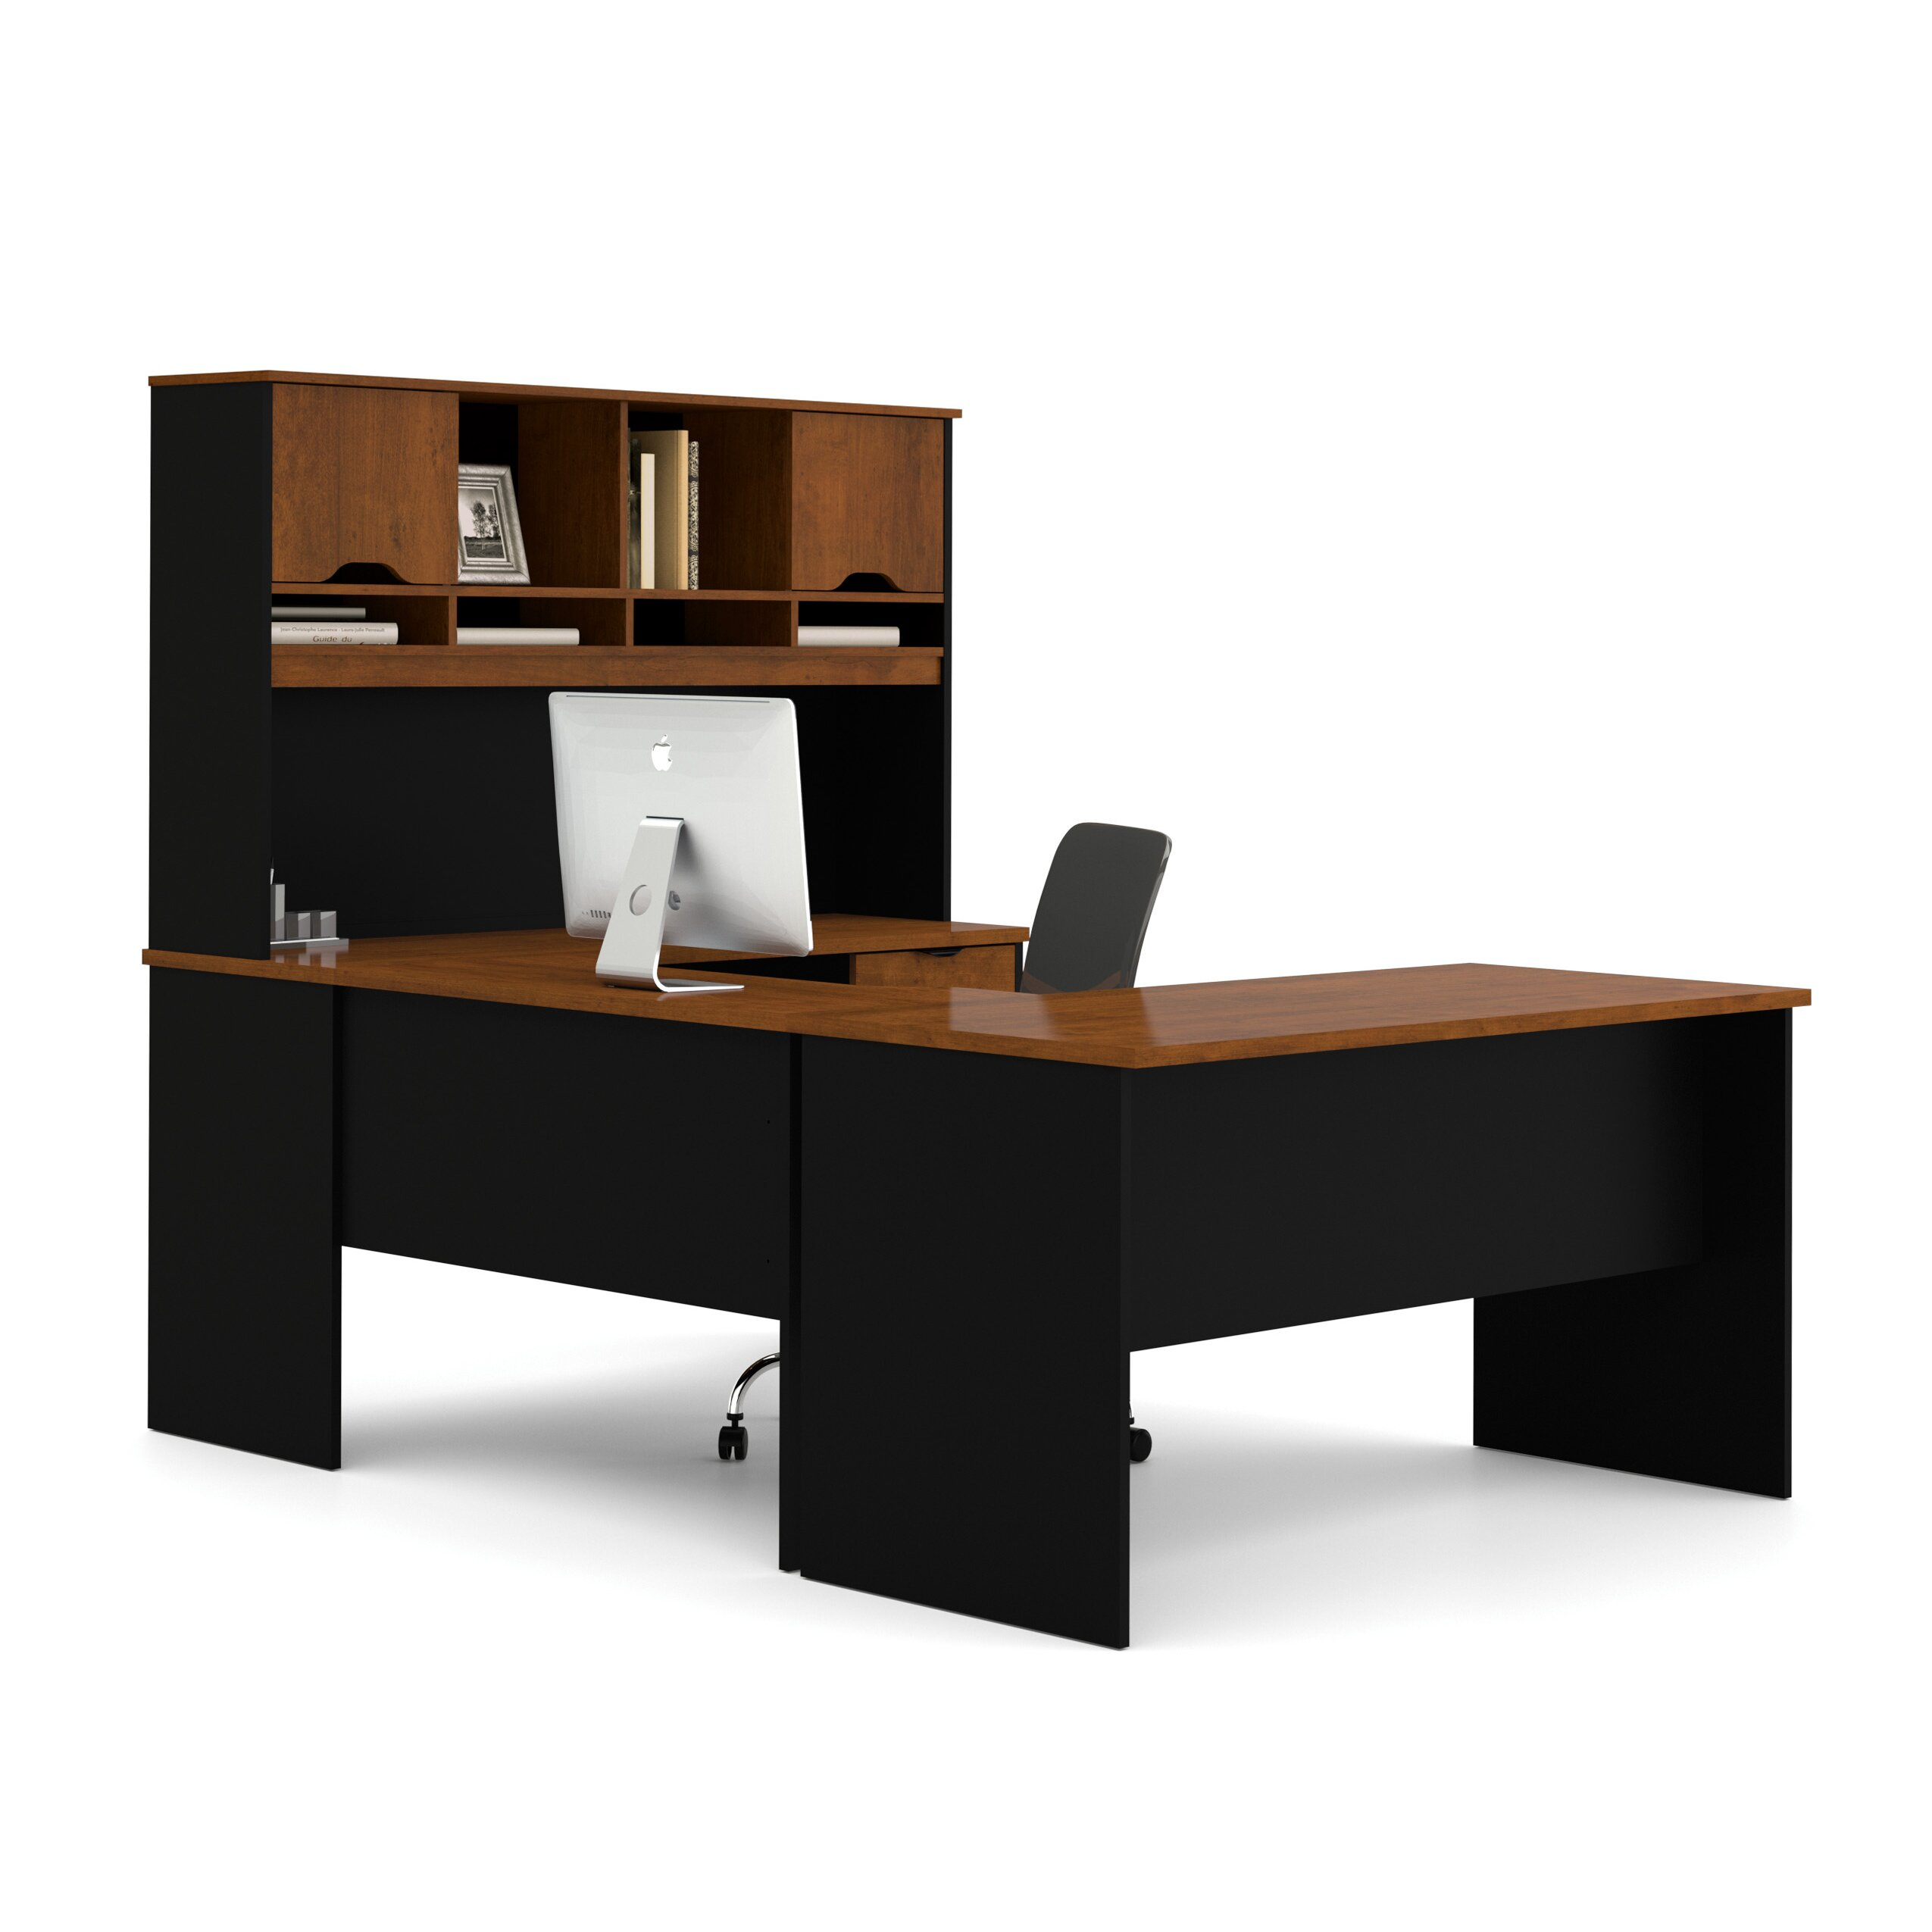 Bestar Innova Executive Desk  Wayfair. Small Desk Table Ikea. Wide Console Table. The Lone Bellow Tiny Desk. Wood Trunk Coffee Table. Small Teen Desk. Office Paper Storage Drawers. Antique Pool Tables For Sale. Ebay Desks Antique